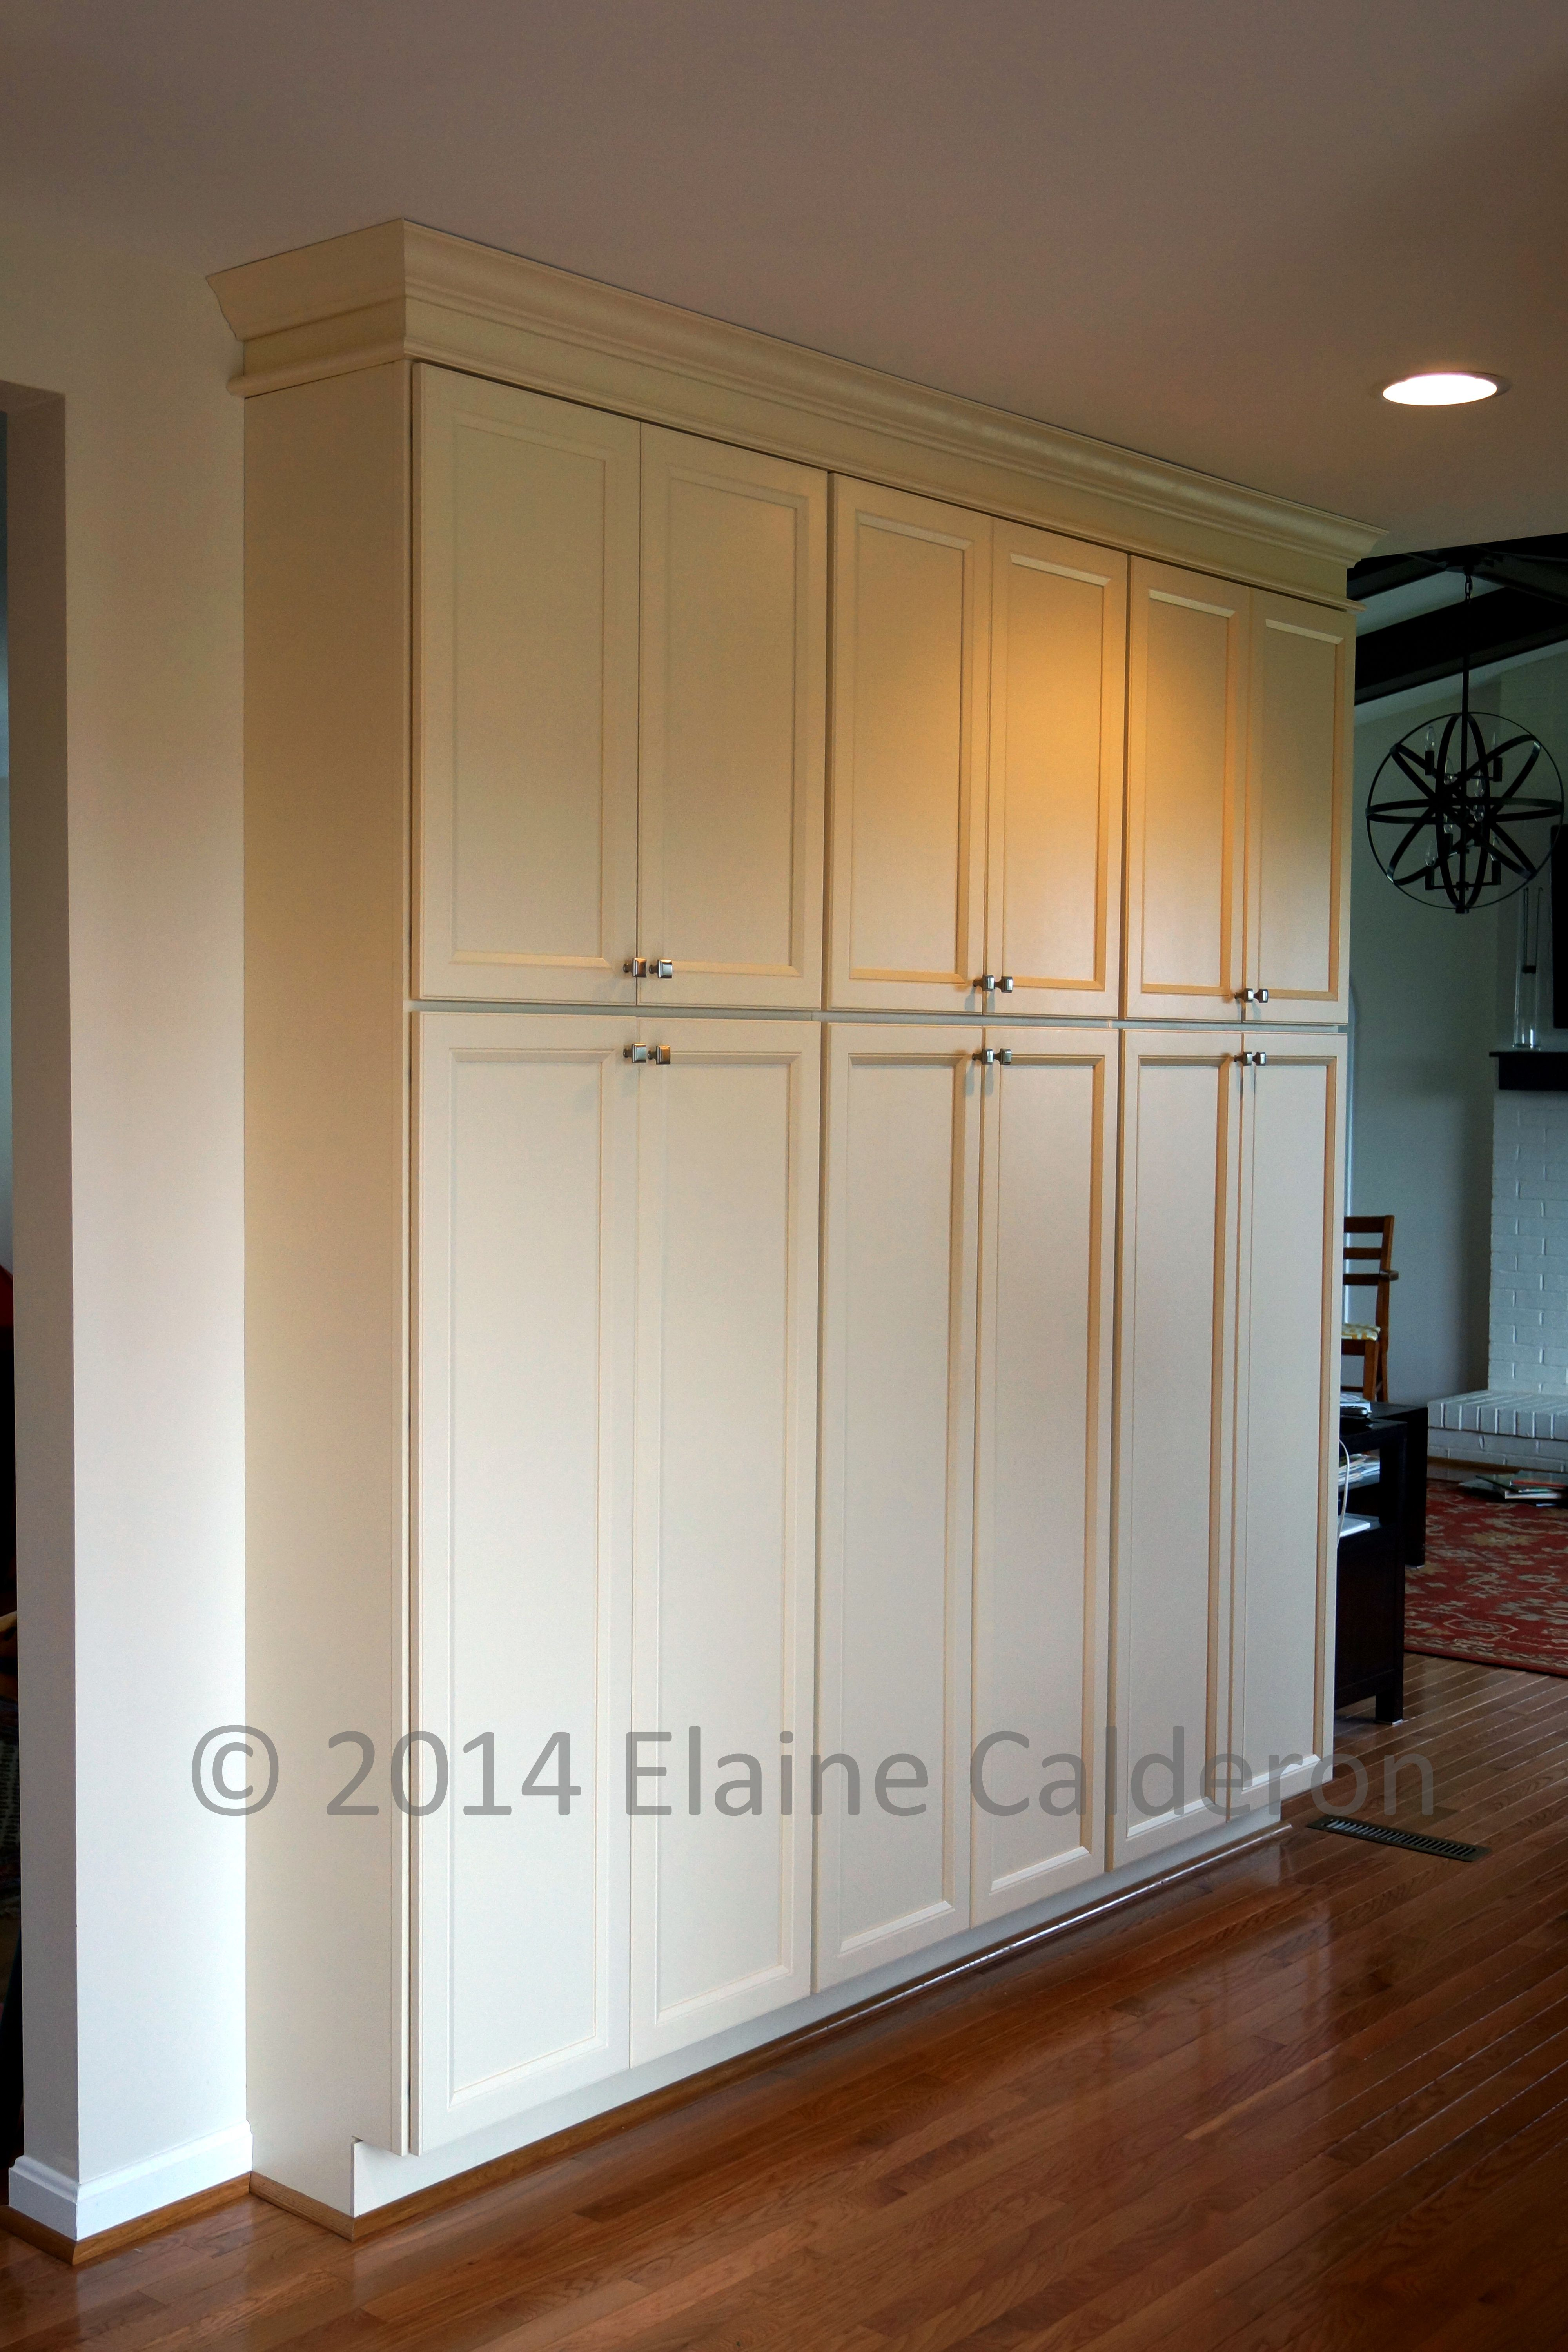 Medallion Silverline Cabinetry Fletcher Maple Full Overlay Door White Chocolate Classic Paint & Medallion Silverline Cabinetry Fletcher Maple Full Overlay Door ...